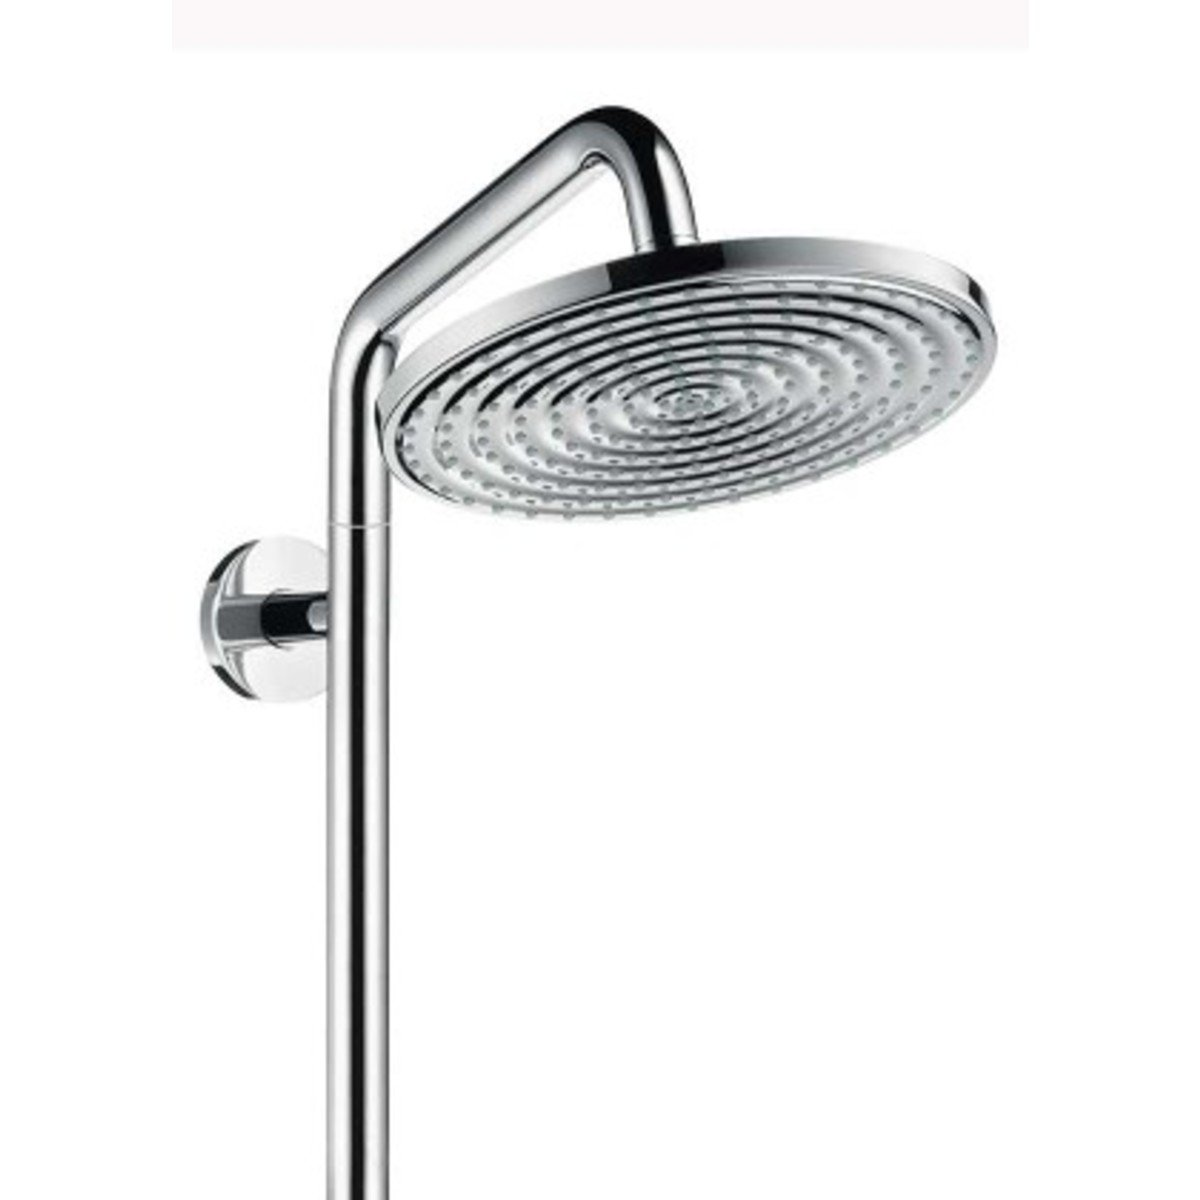 hansgrohe raindance select air 240 showerpipe met handdouche en hoofddouche chroom 27115000. Black Bedroom Furniture Sets. Home Design Ideas